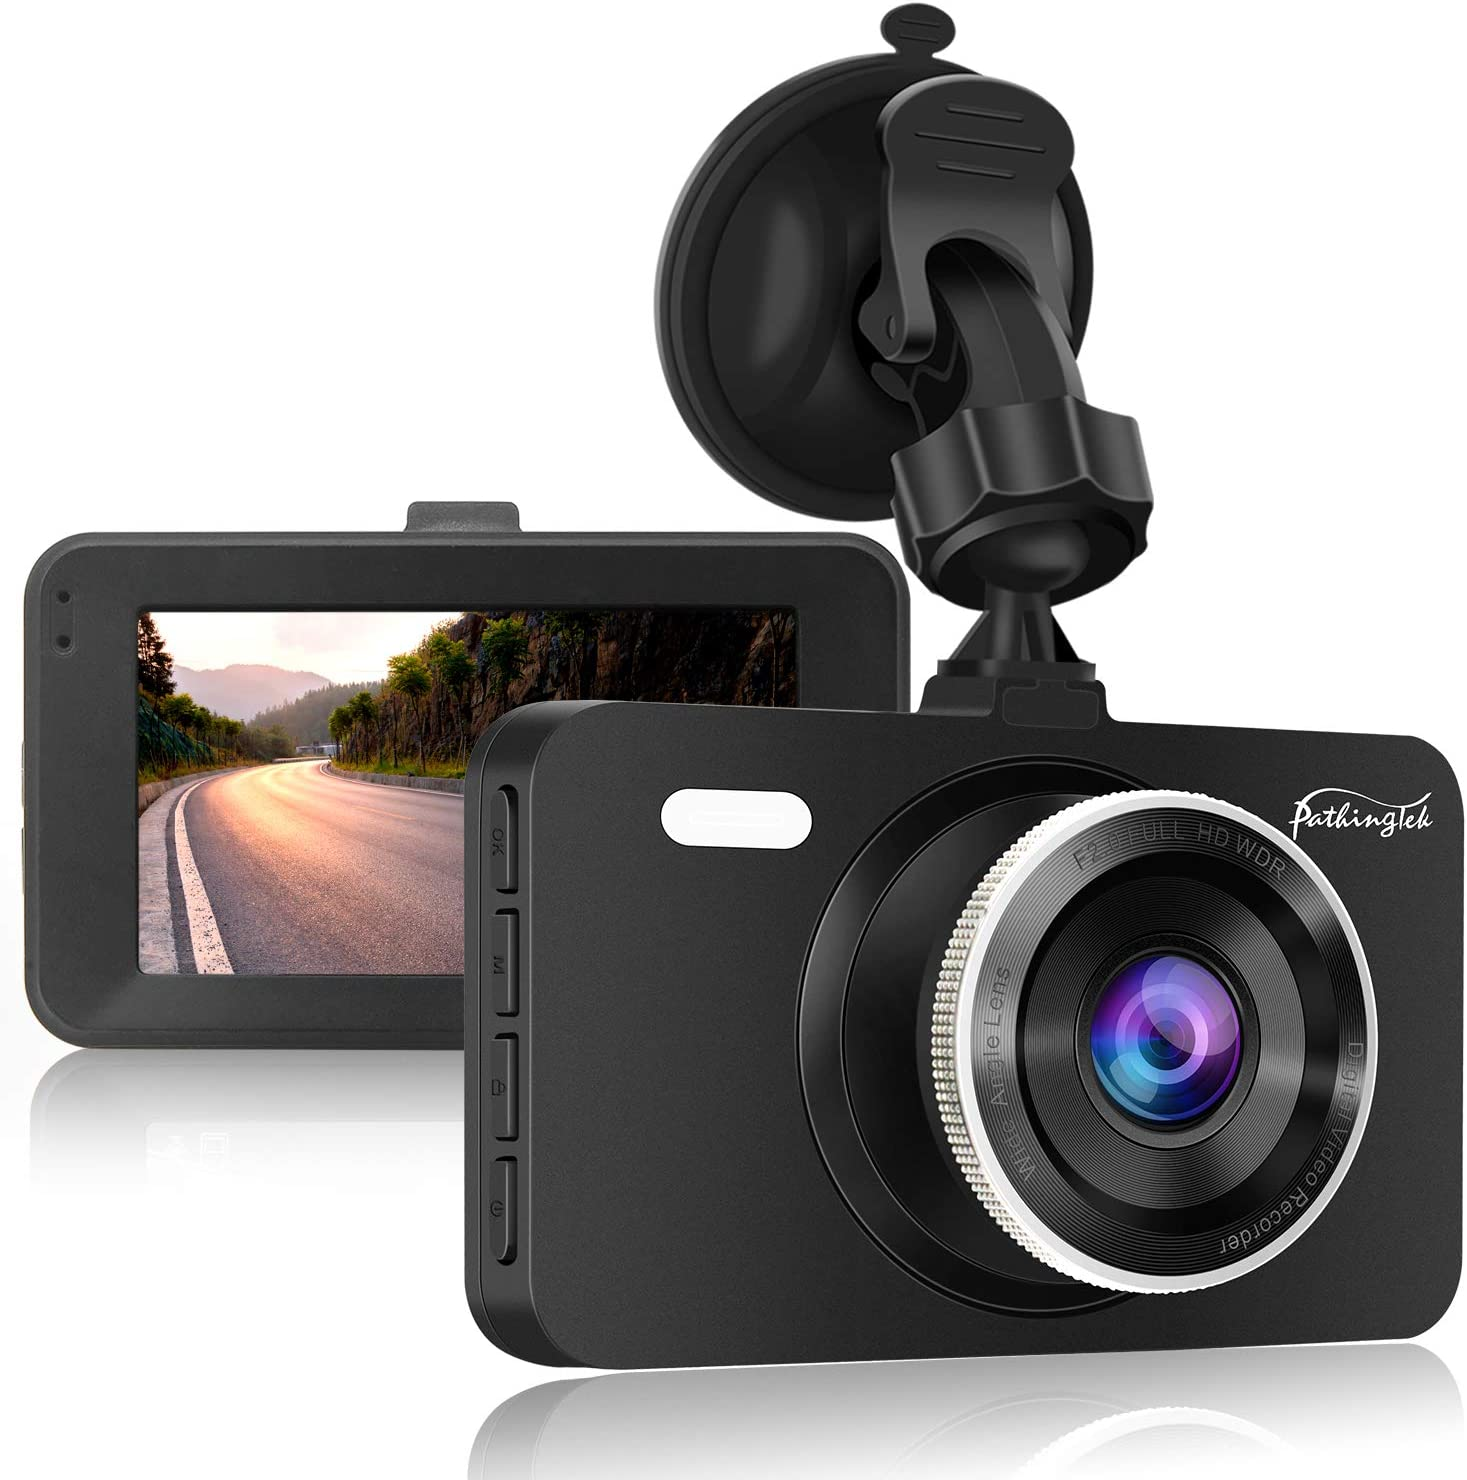 170 Wide Angle Car DVR Vehicle DashCam Built in G-Sensor Dash Cam by Amebay Full HD 1080P Dashboard Camera Recorder Loop Recording with 16GB SD Card